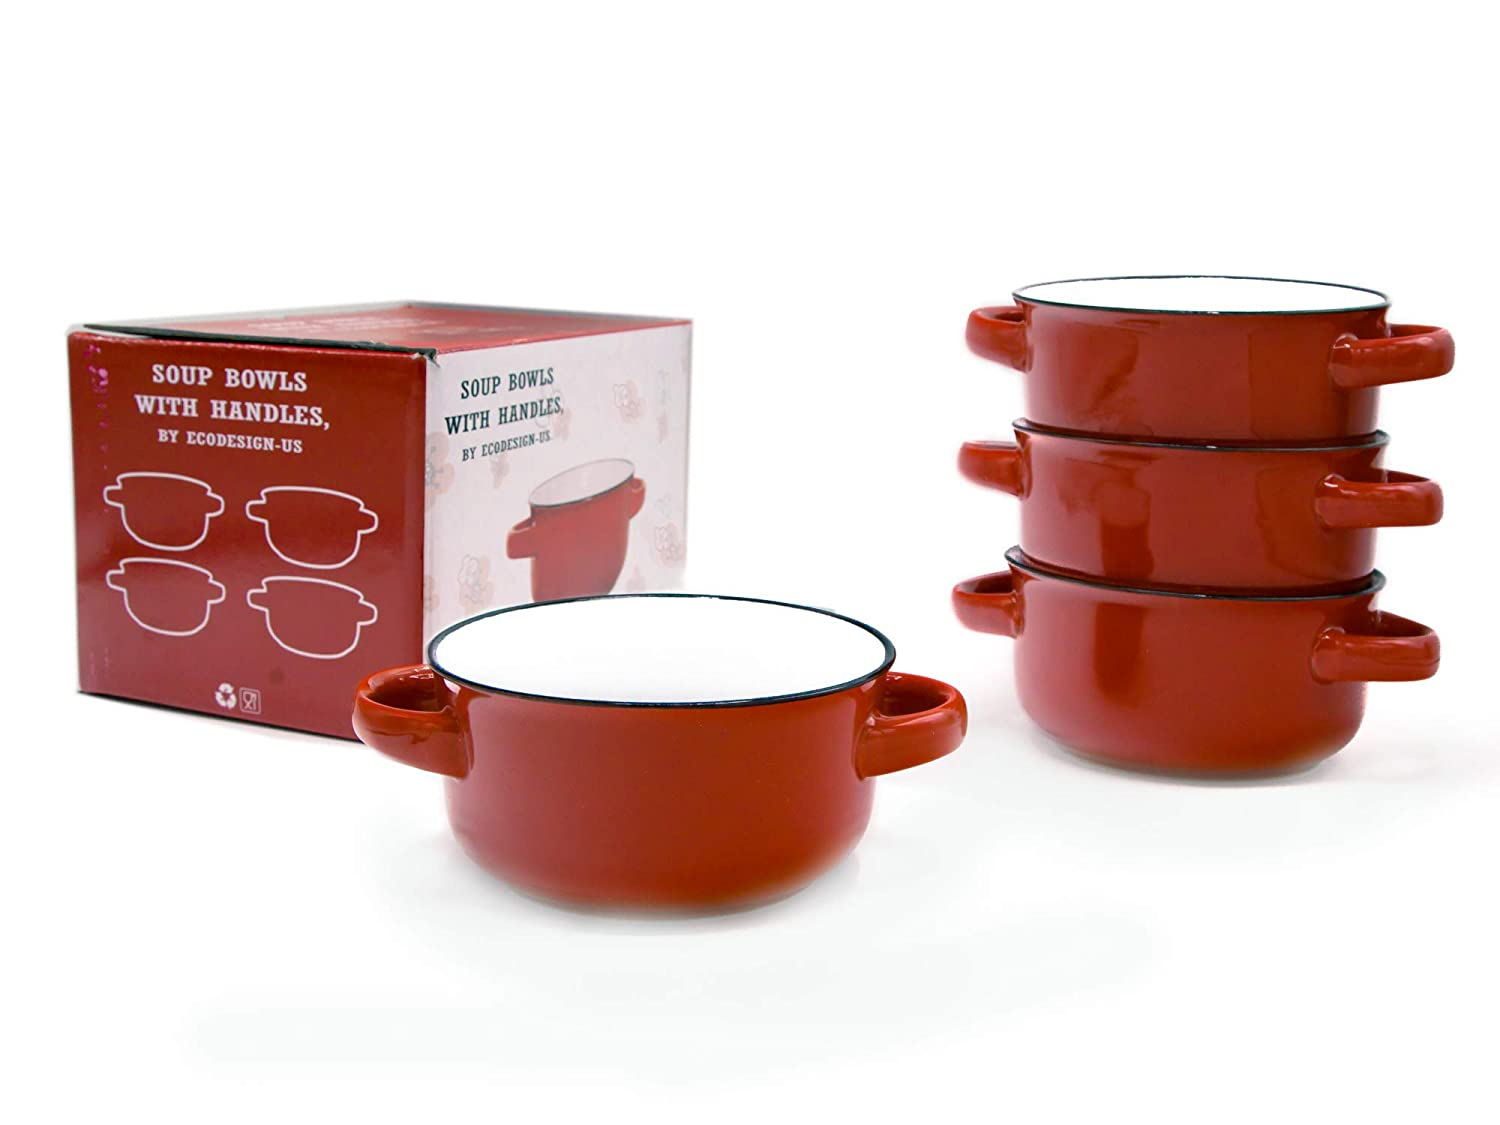 Baking Serving Ceramic Red 16 Oz Soup Bowls with Handles - Set of Four - Stoneware Chowder Bisque Pot Pie Crocks